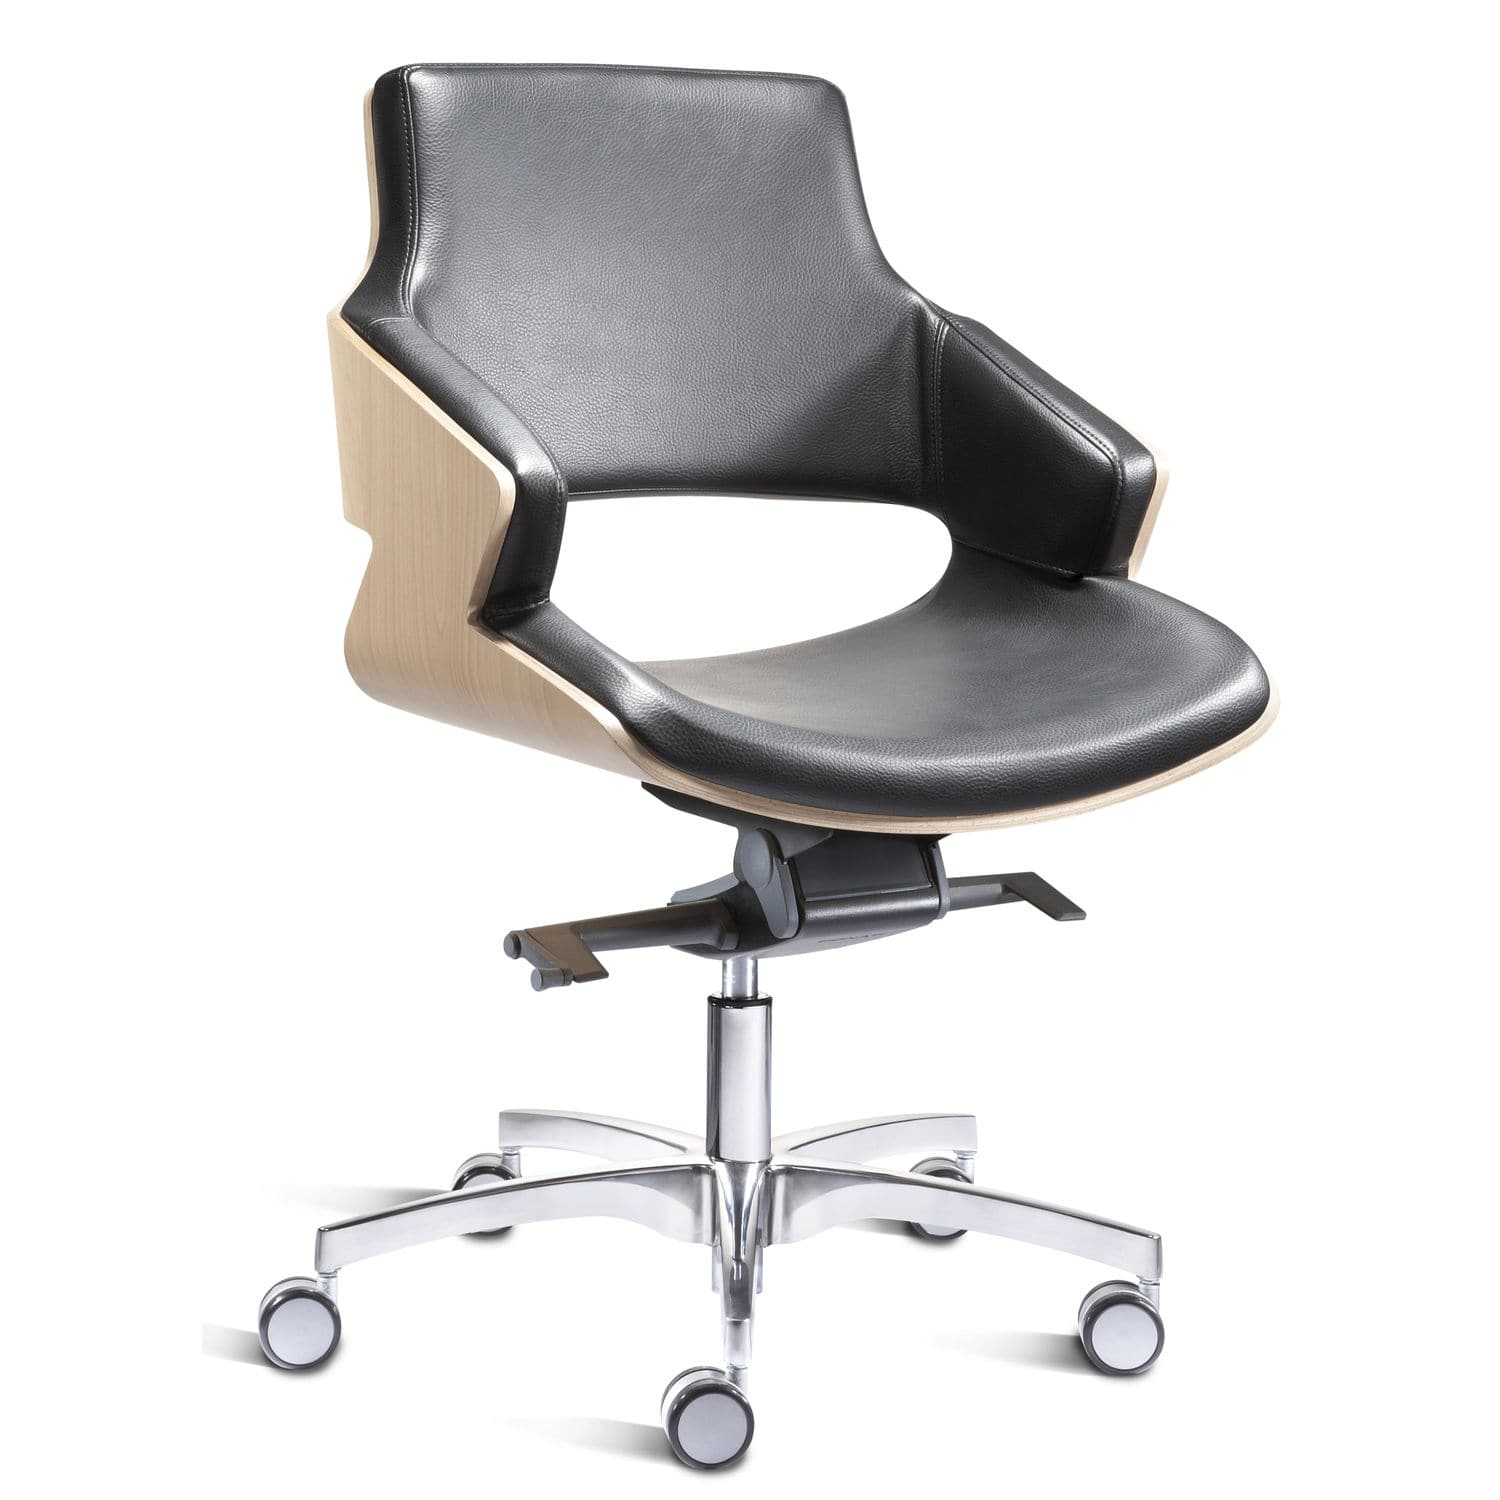 Contemporary office chair with armrests upholstered on